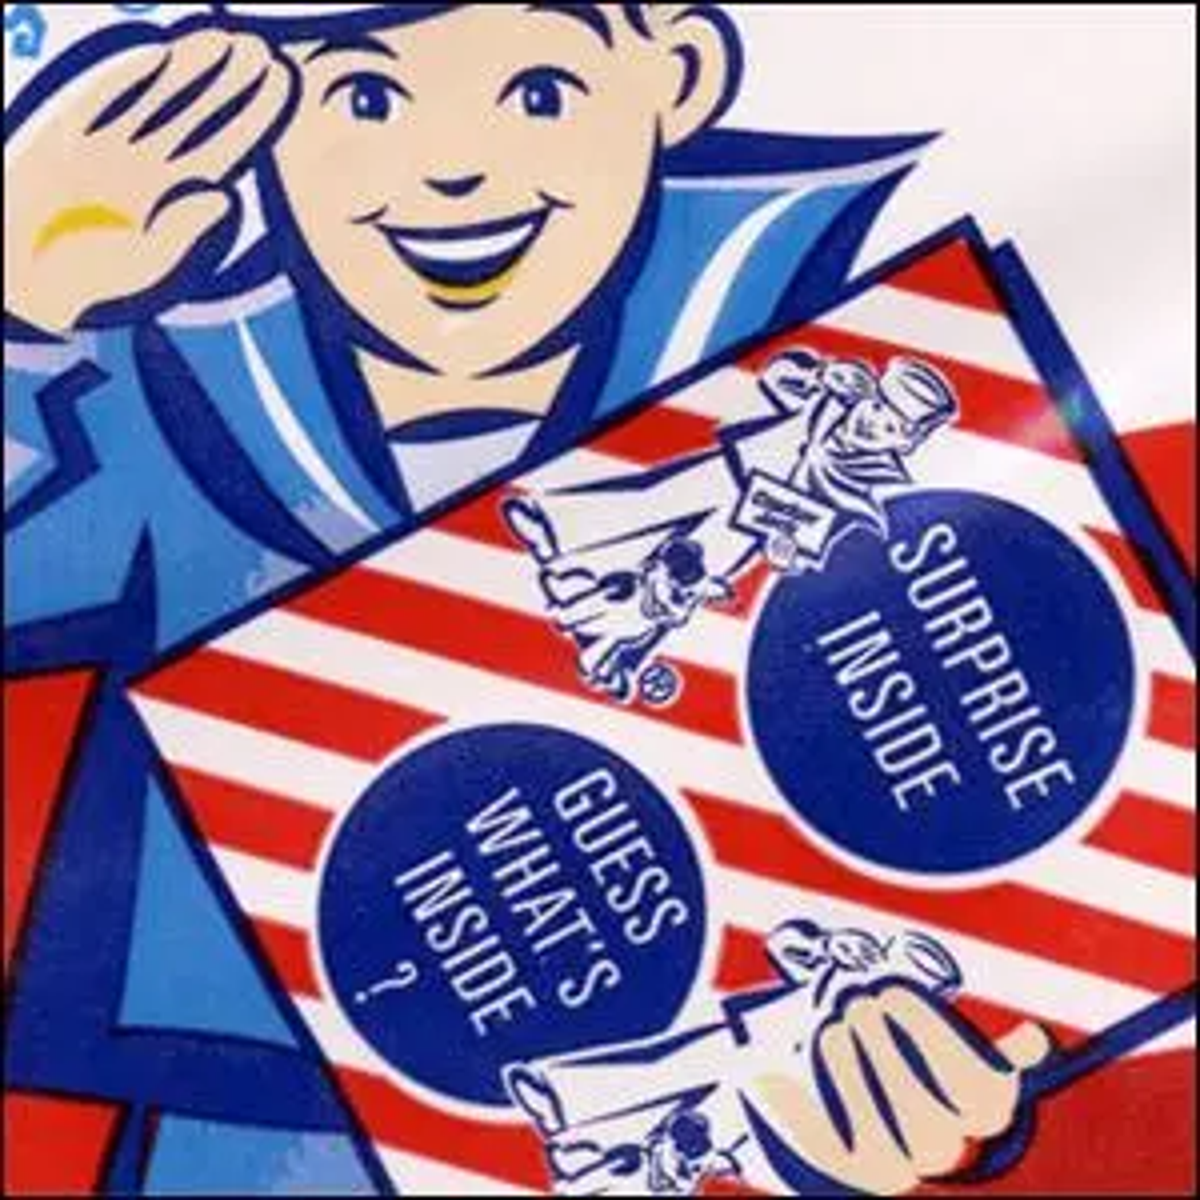 Sailor Jack, one of the mascots for Cracker Jack.